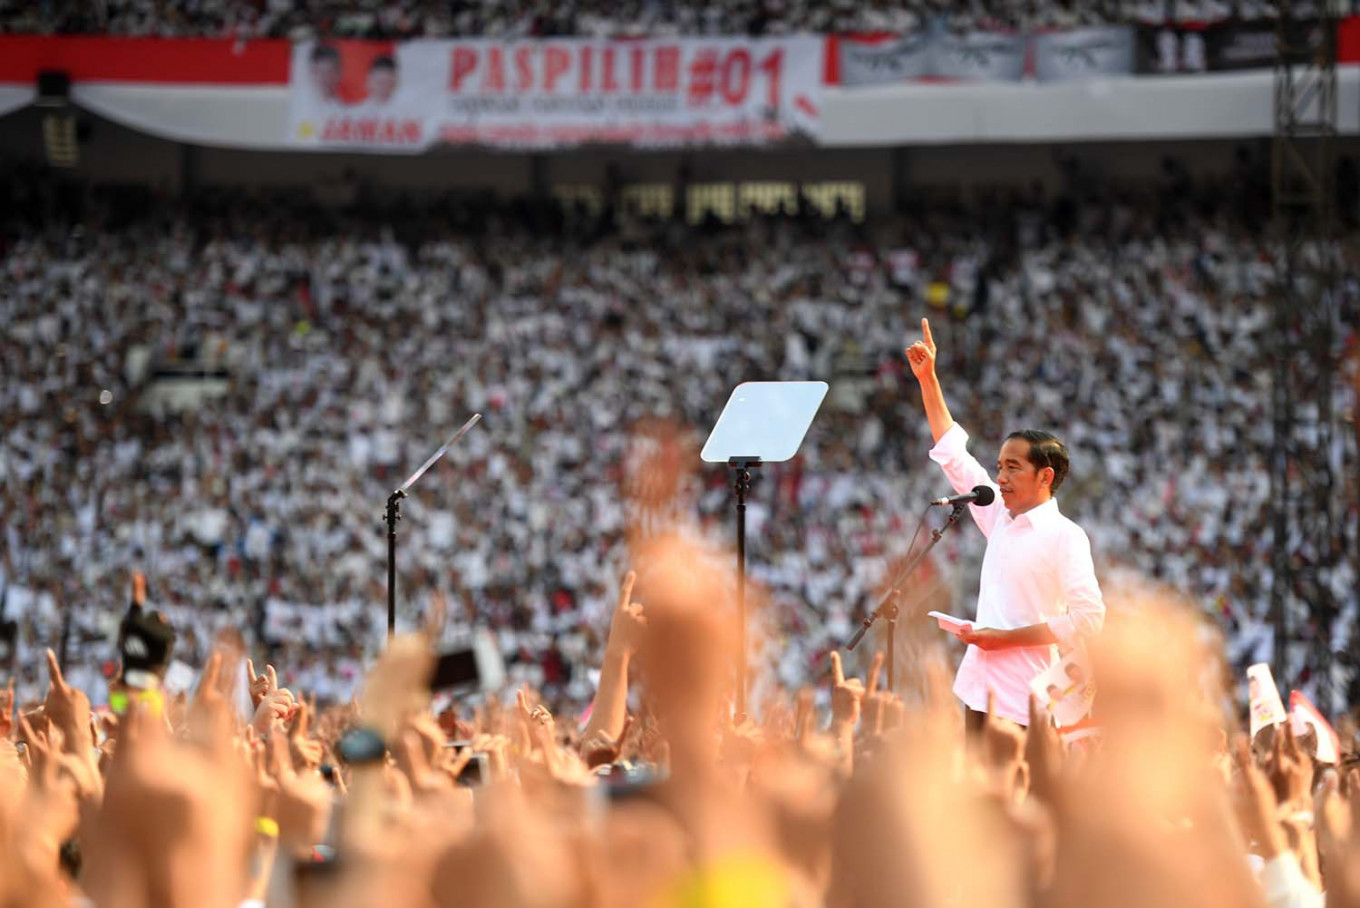 Jokowi emphasizes diversity, confidence in final rally